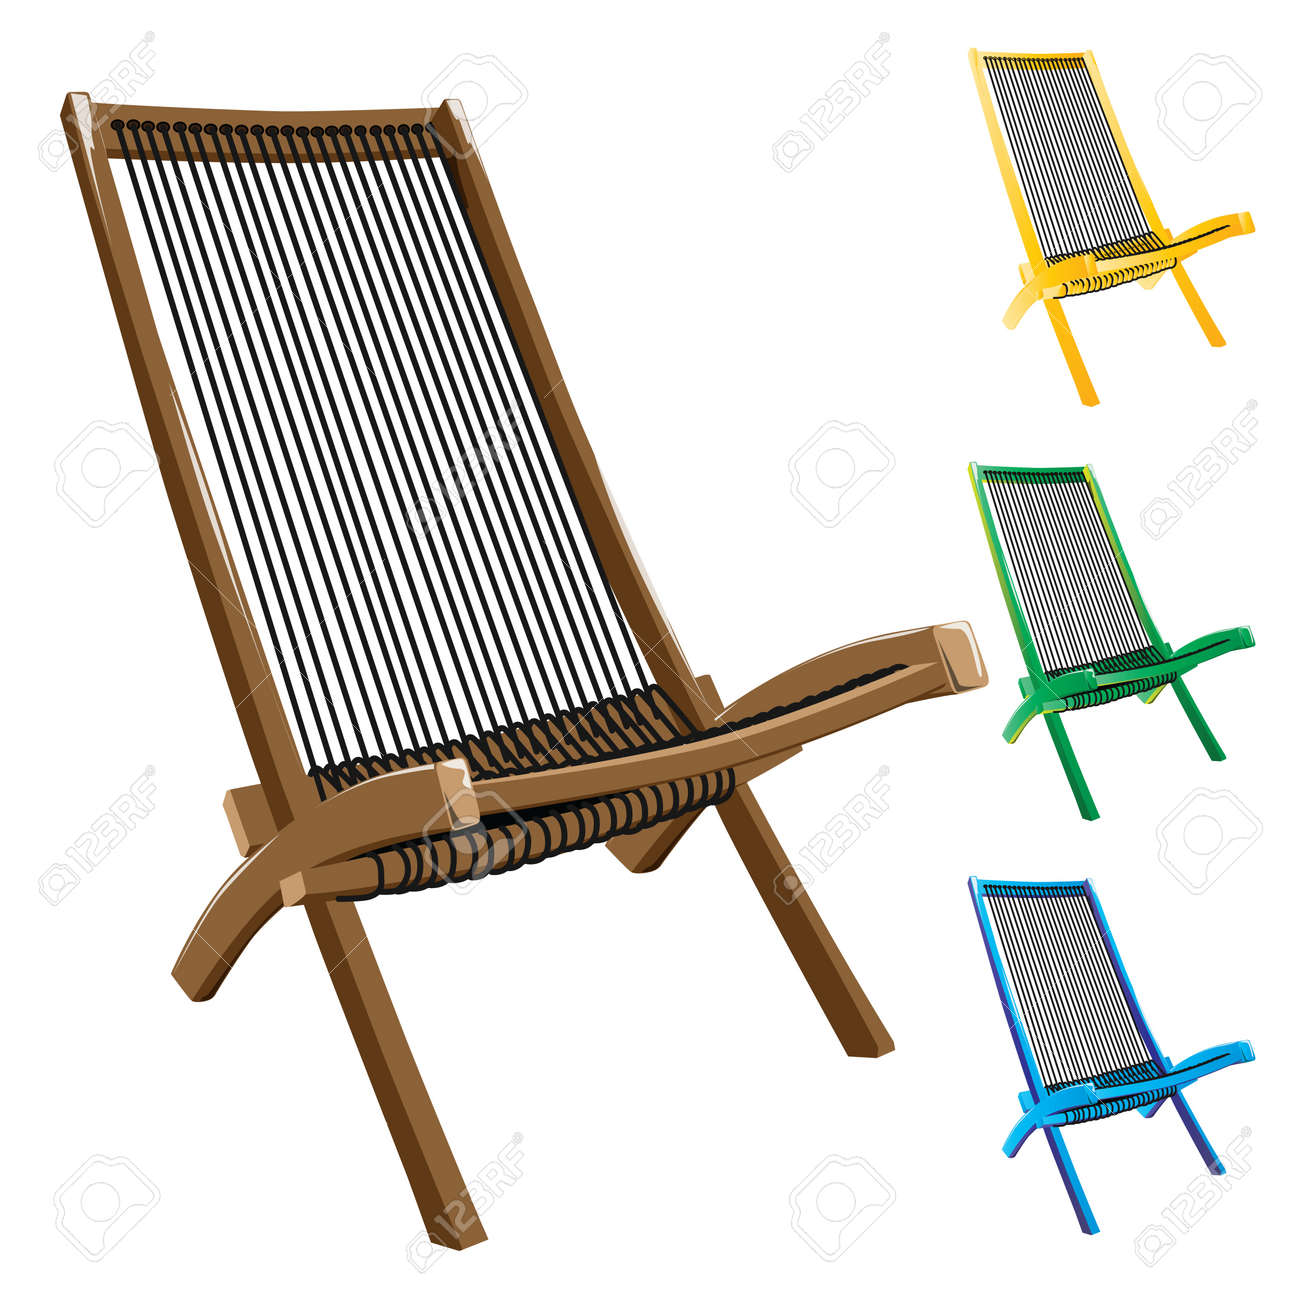 Deck chairs with rope seat isolated on white background. Vector, illustration. Stock Vector - 45222037